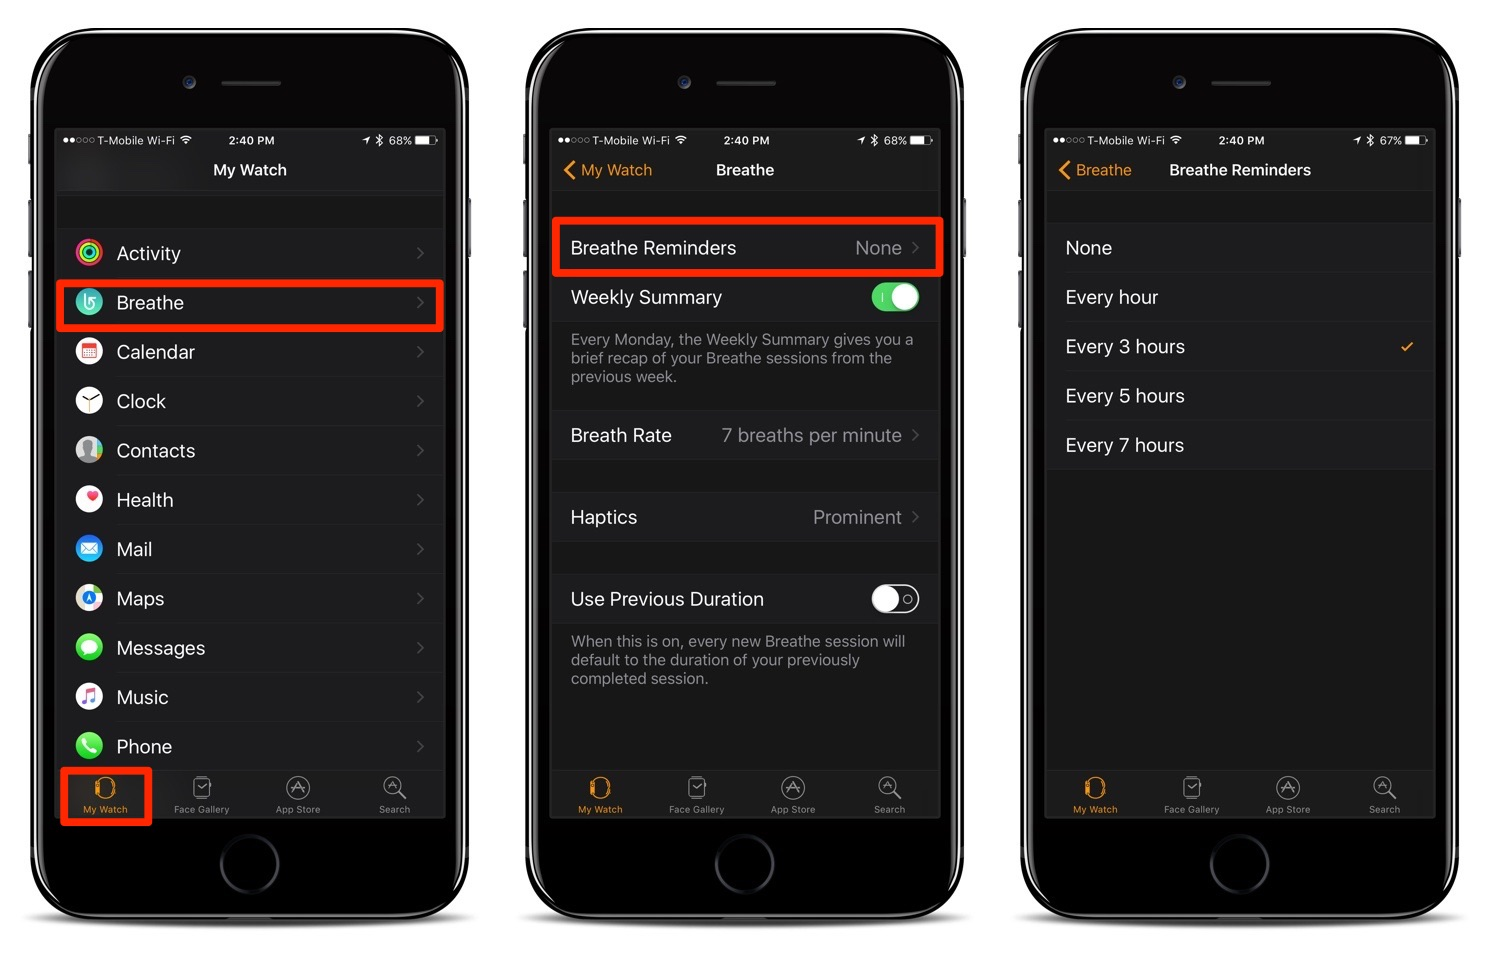 How To Turn Off or Adjust the 'Breathe' Reminders on Your Apple Watch